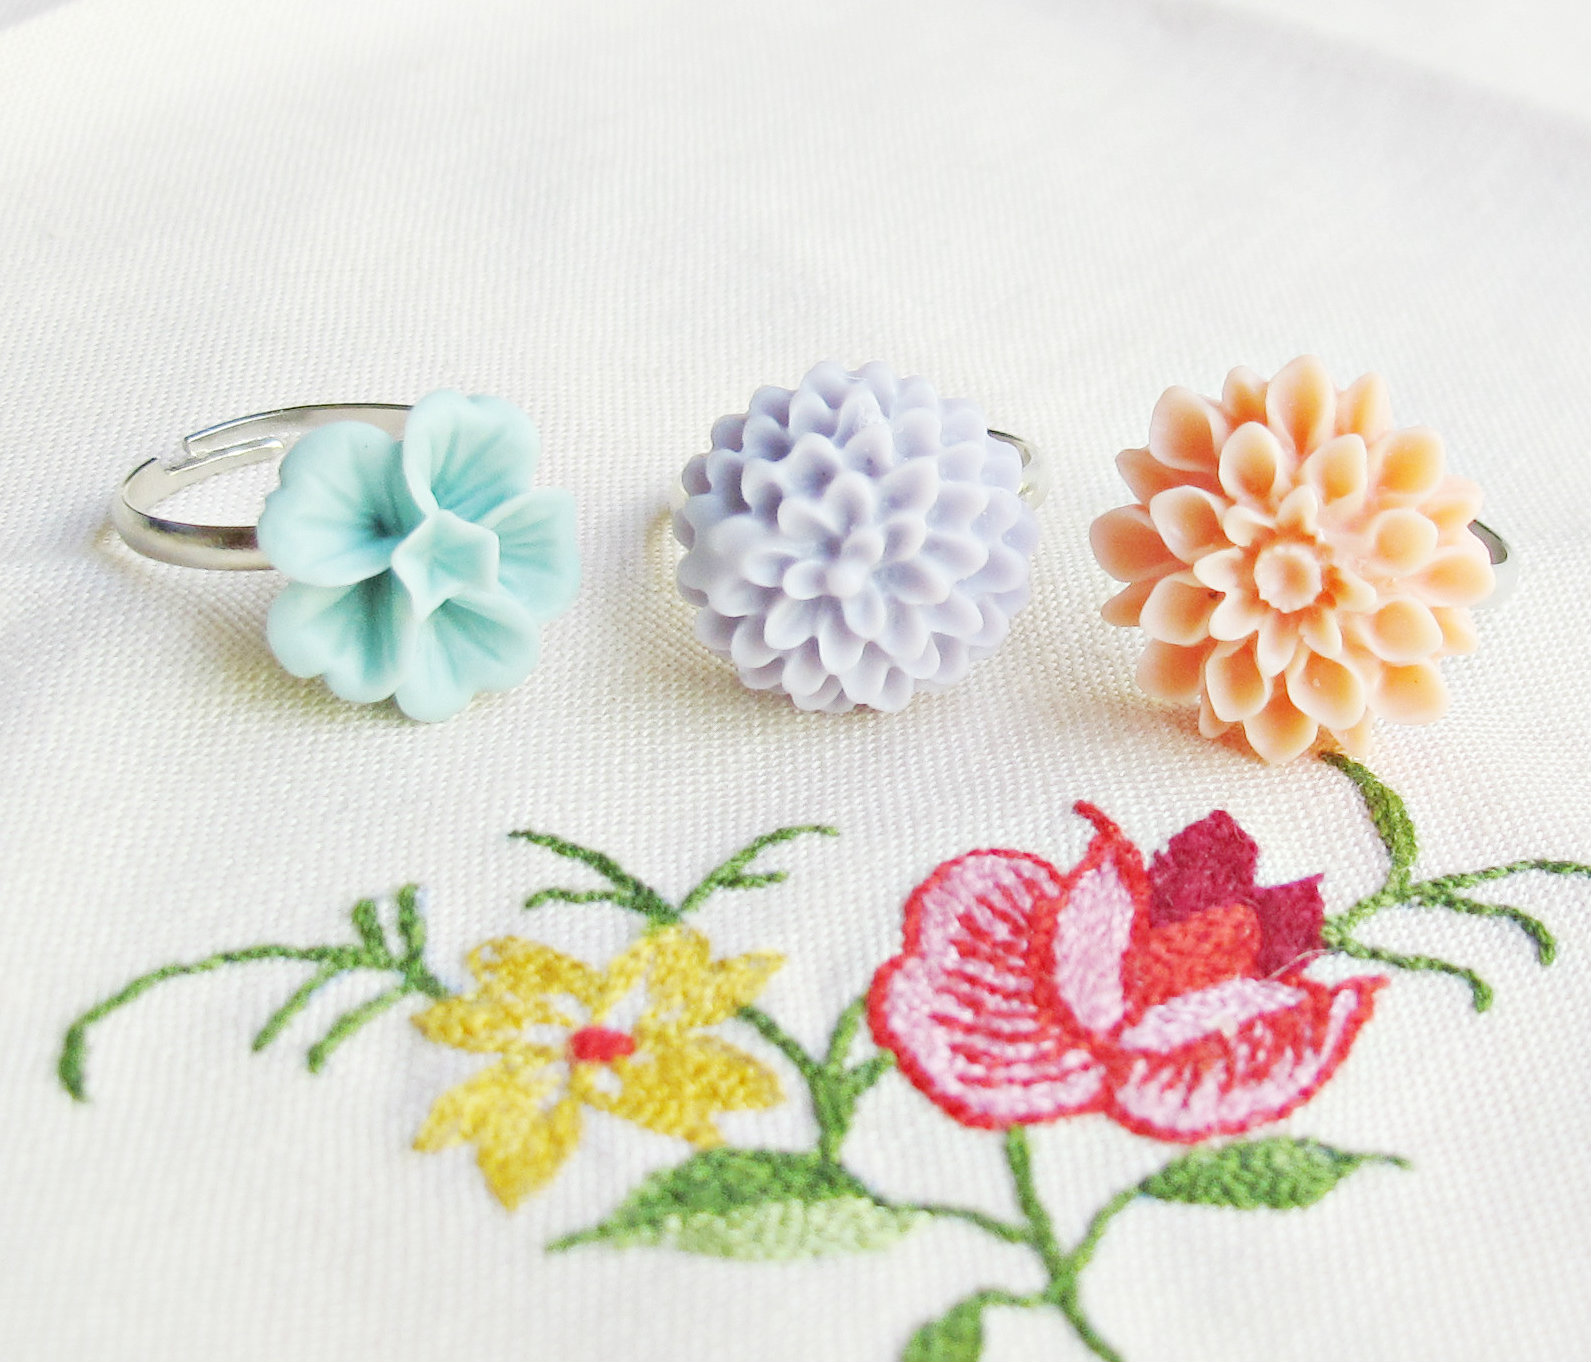 image pastelles ring set trio girls children lilac mauve peach apricot pastel blue turquoise grayed jade african violet pantone